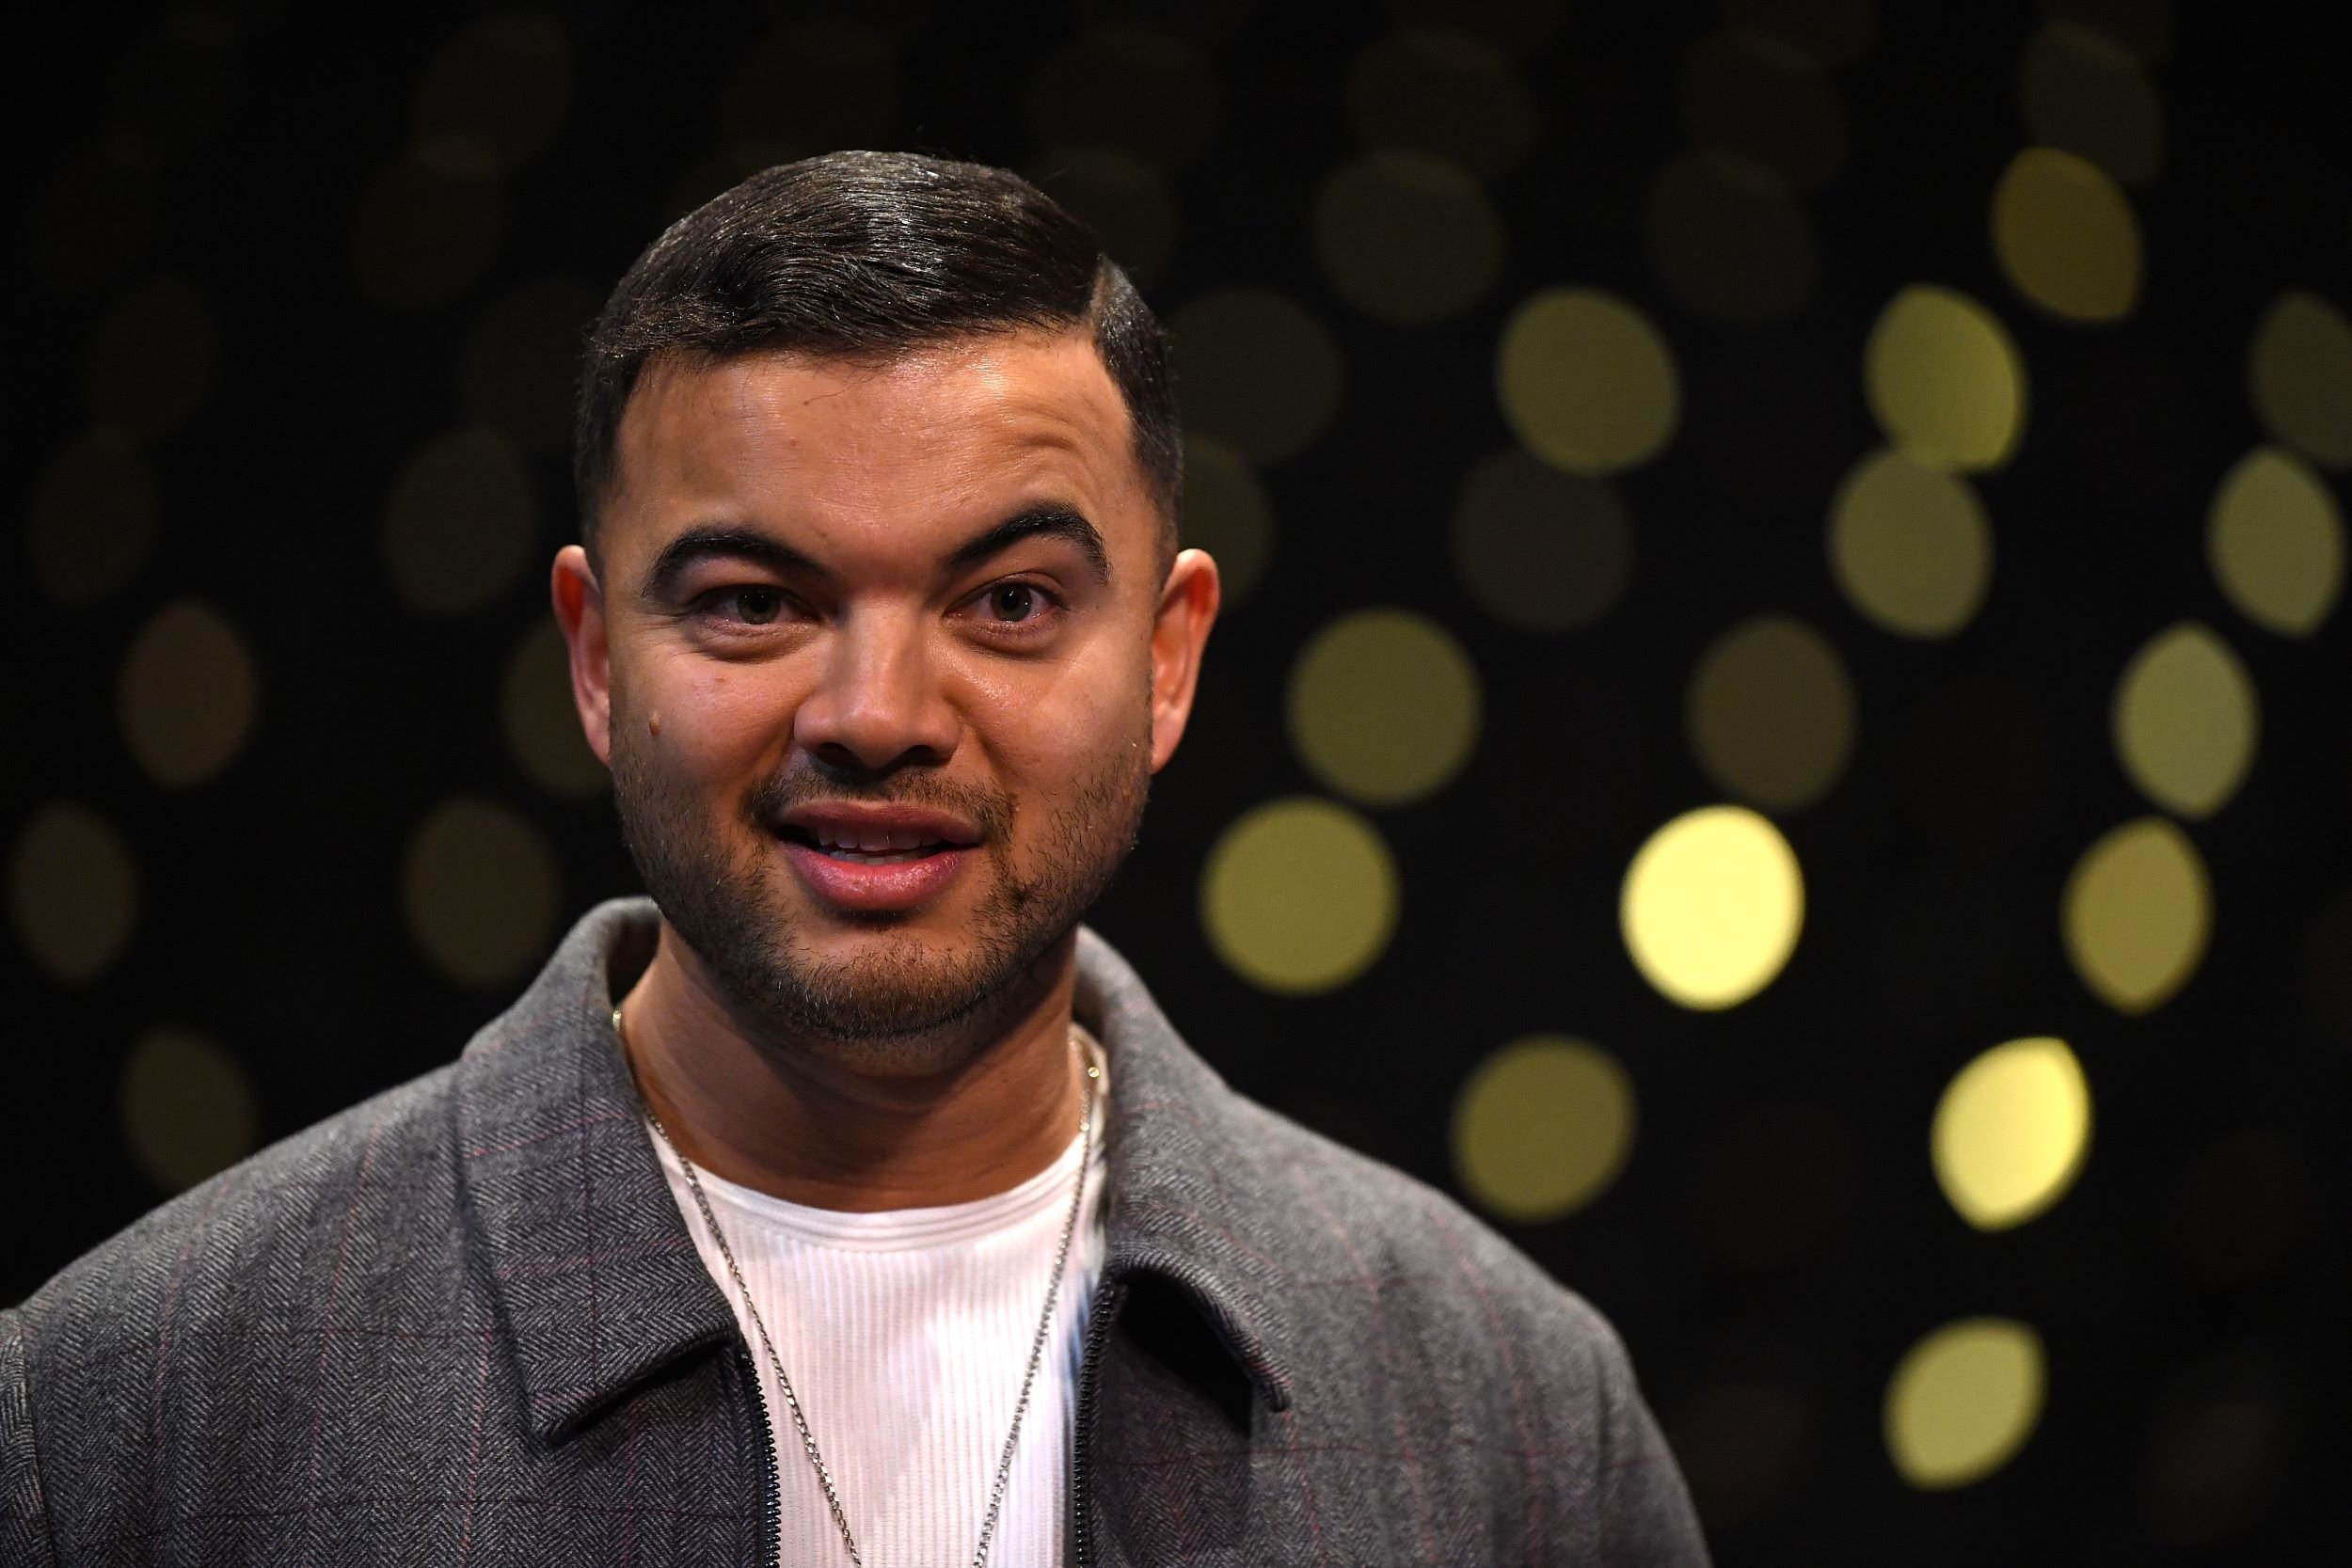 Singer Guy Sebastian reveals how he was held at gunpoint by police after being suspected of driving a stolen car